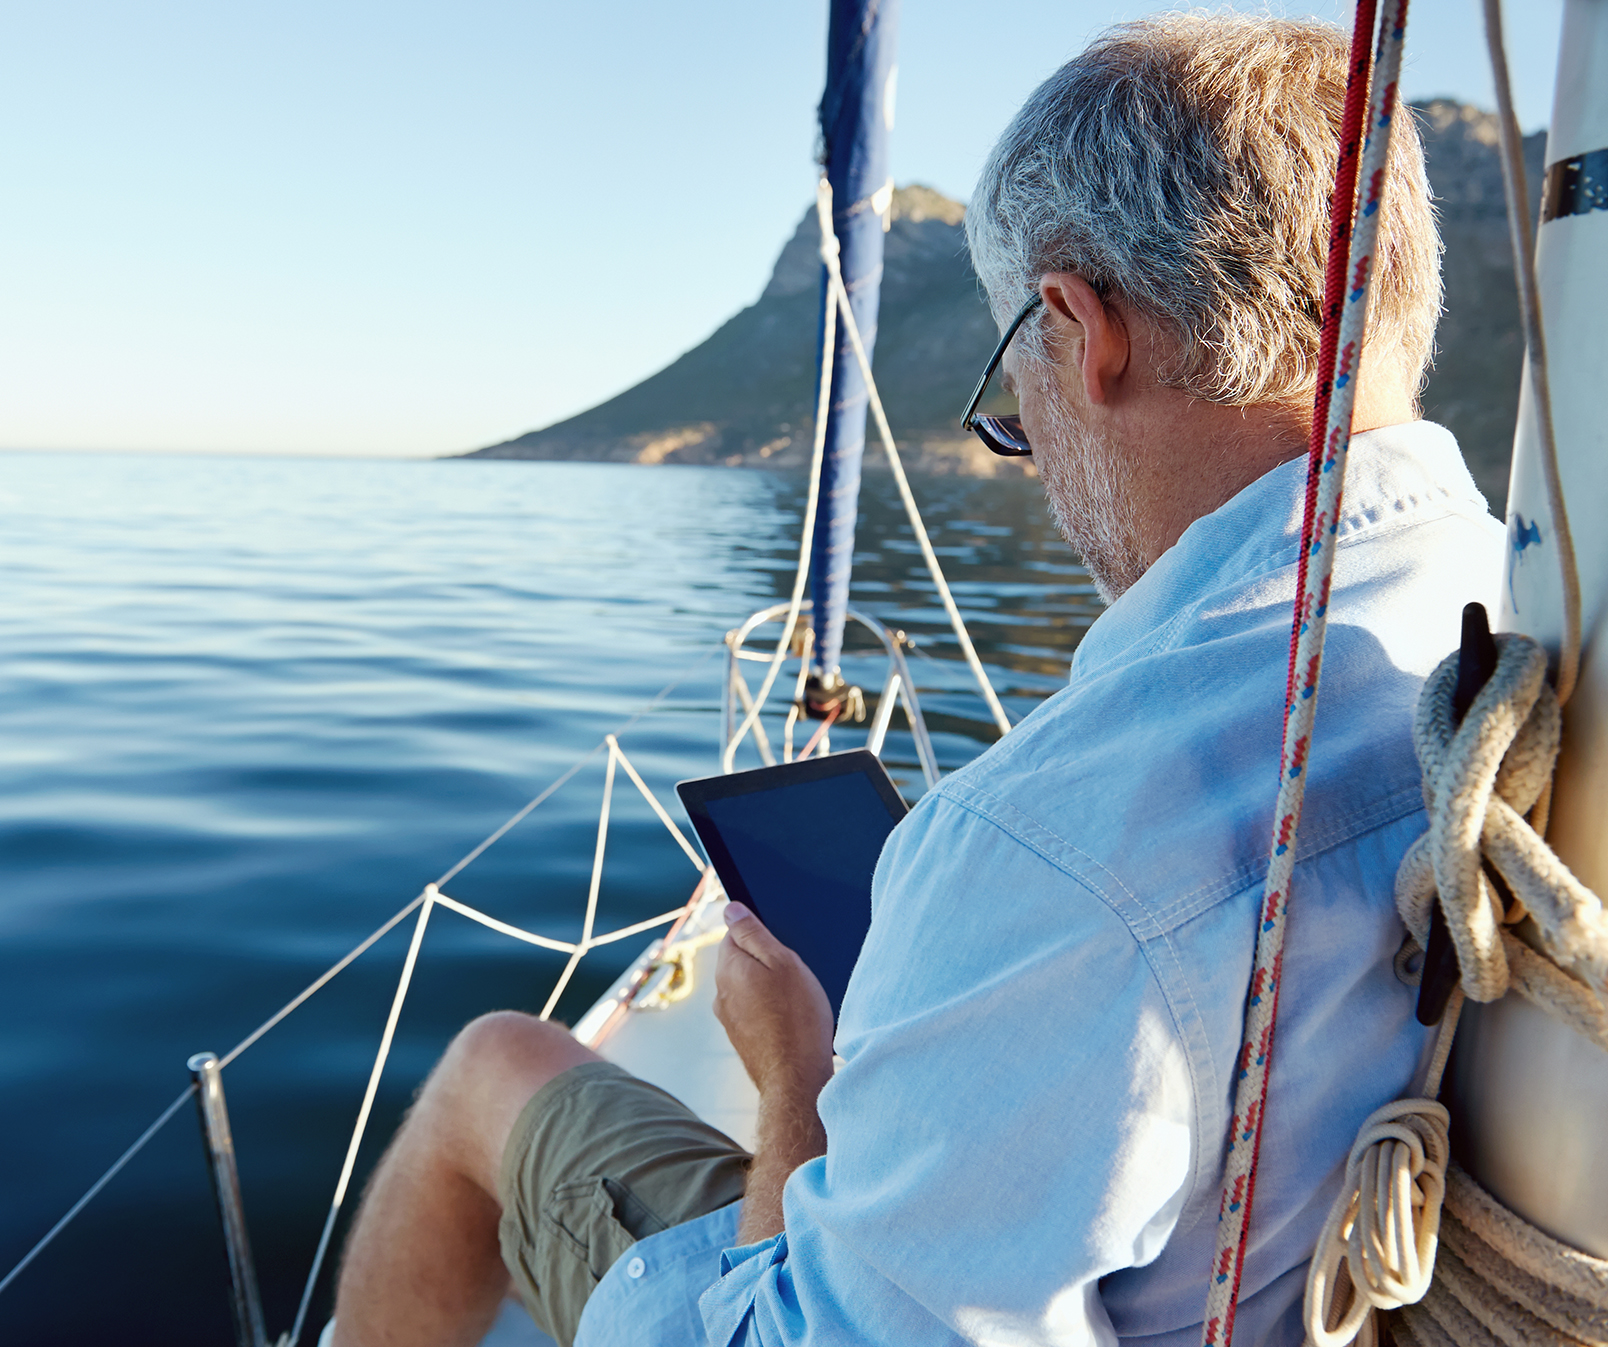 Elderly man, reading his iPad on a sailboat